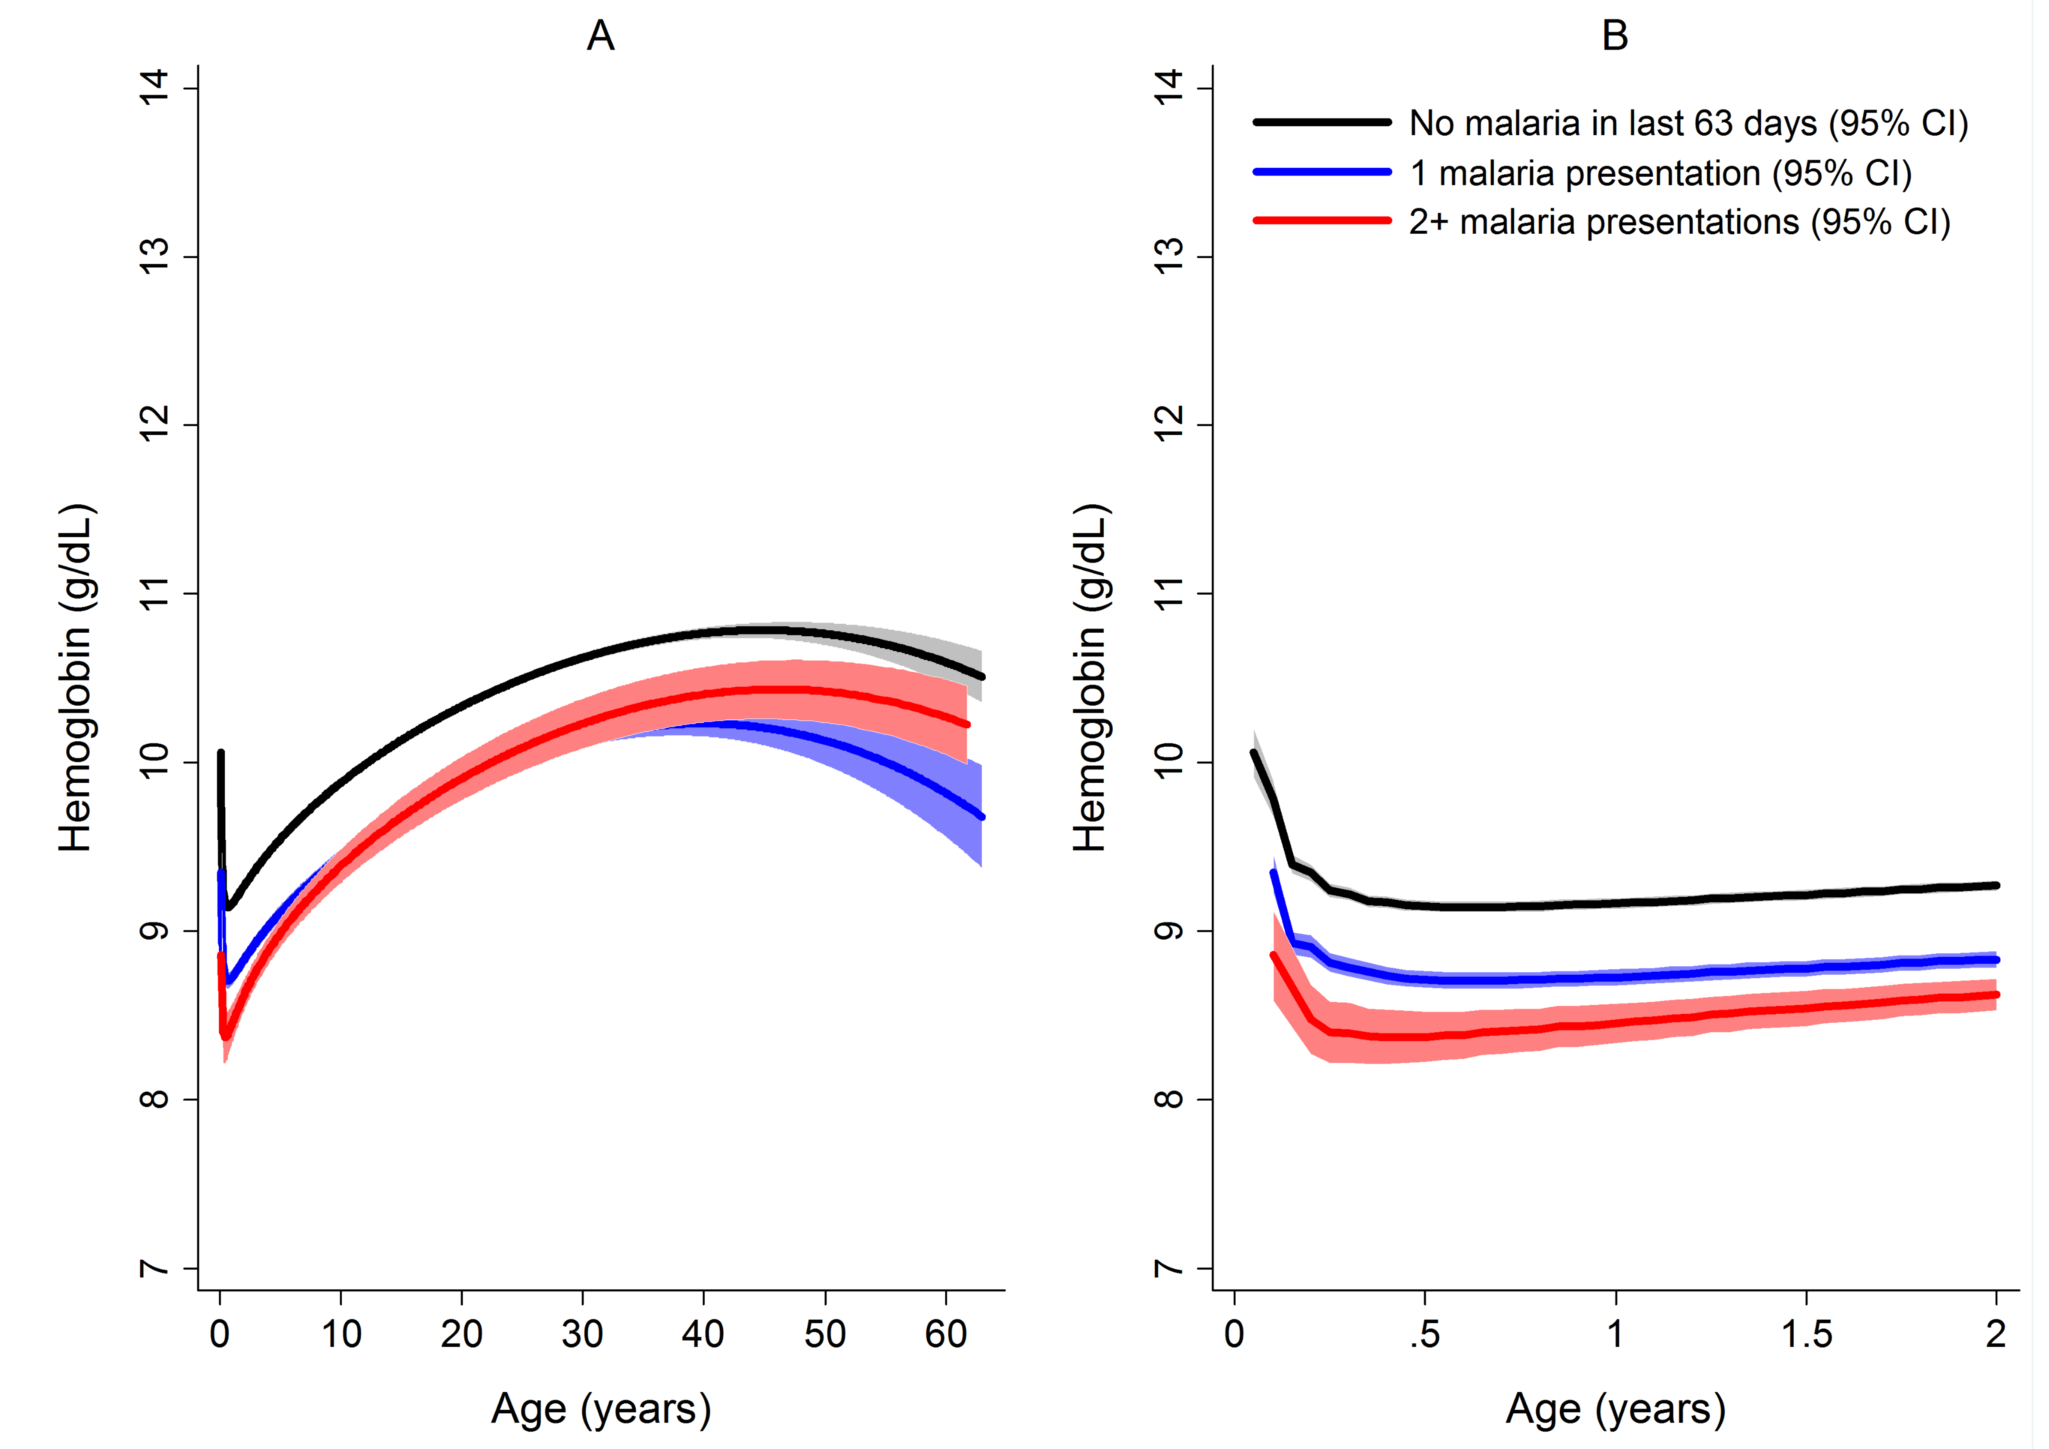 Estimated mean hemoglobin in hospital attendees by number of malaria episodes in the last 63 days from infancy to adulthood (A) and during the first 2 years of life (B).